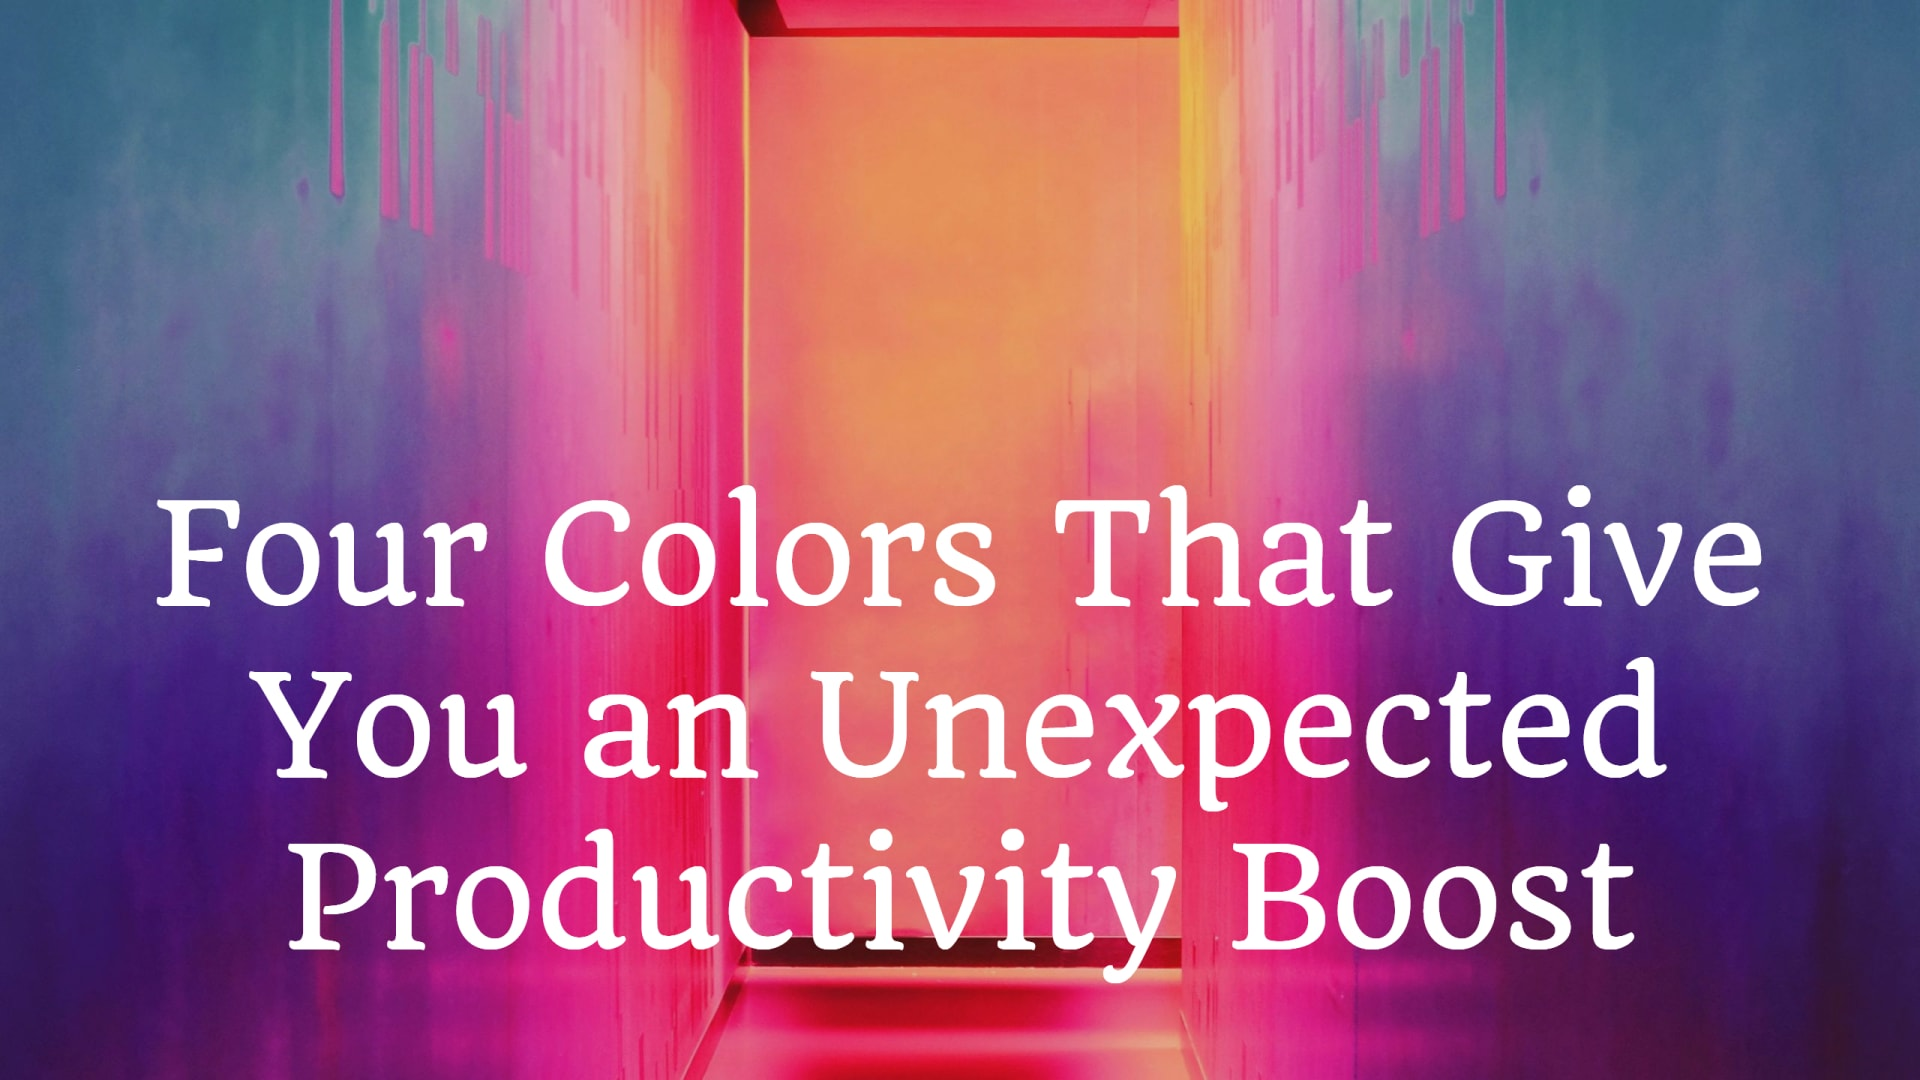 Four Colors That Give You an Unexpected Productivity Boost